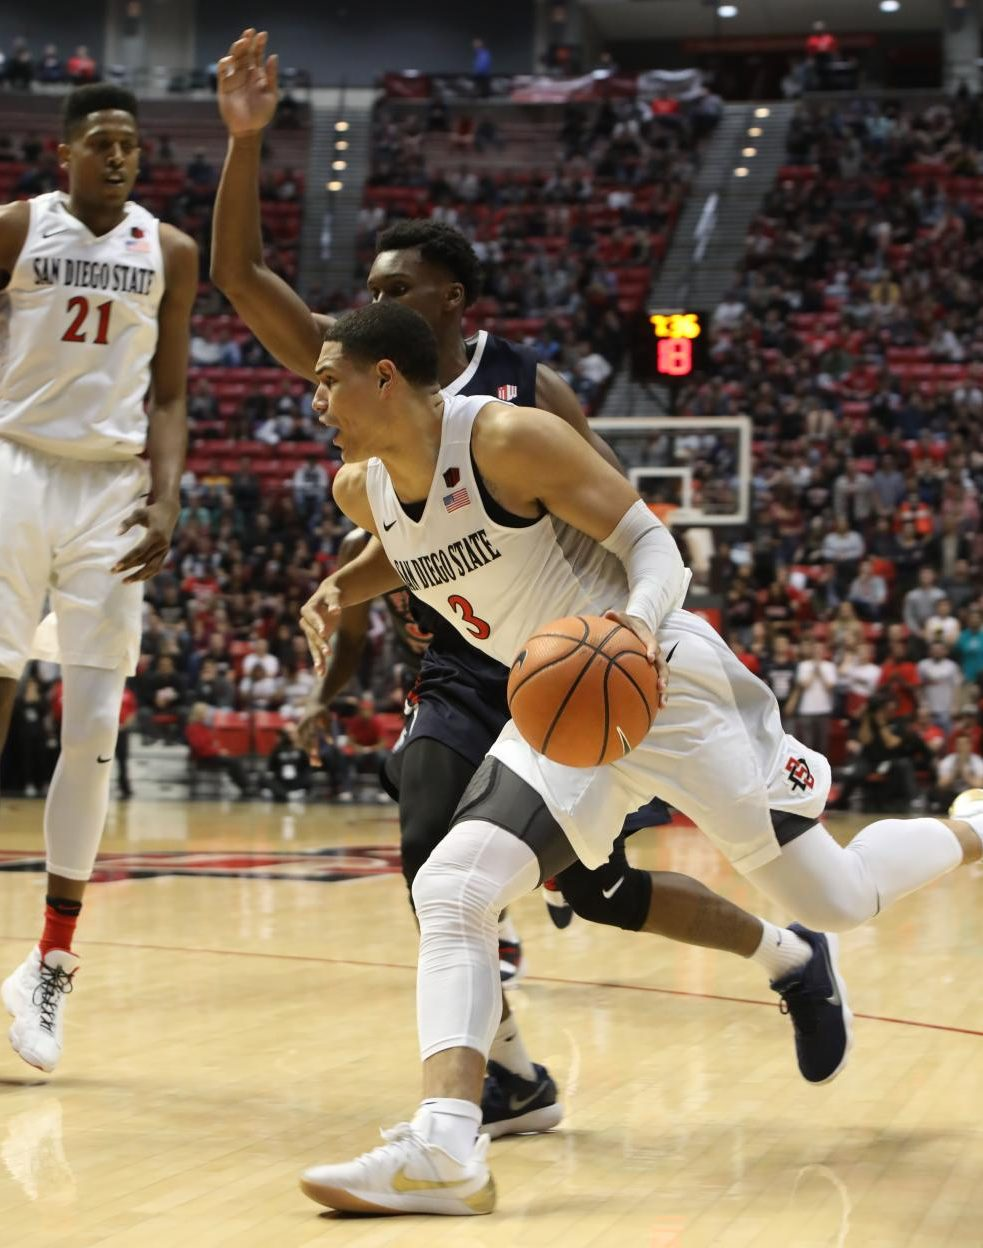 Senior guard Trey Kell drives the ball during the Aztecs 77-73 loss to Fresno State on Jan. 17 at Viejas Arena.